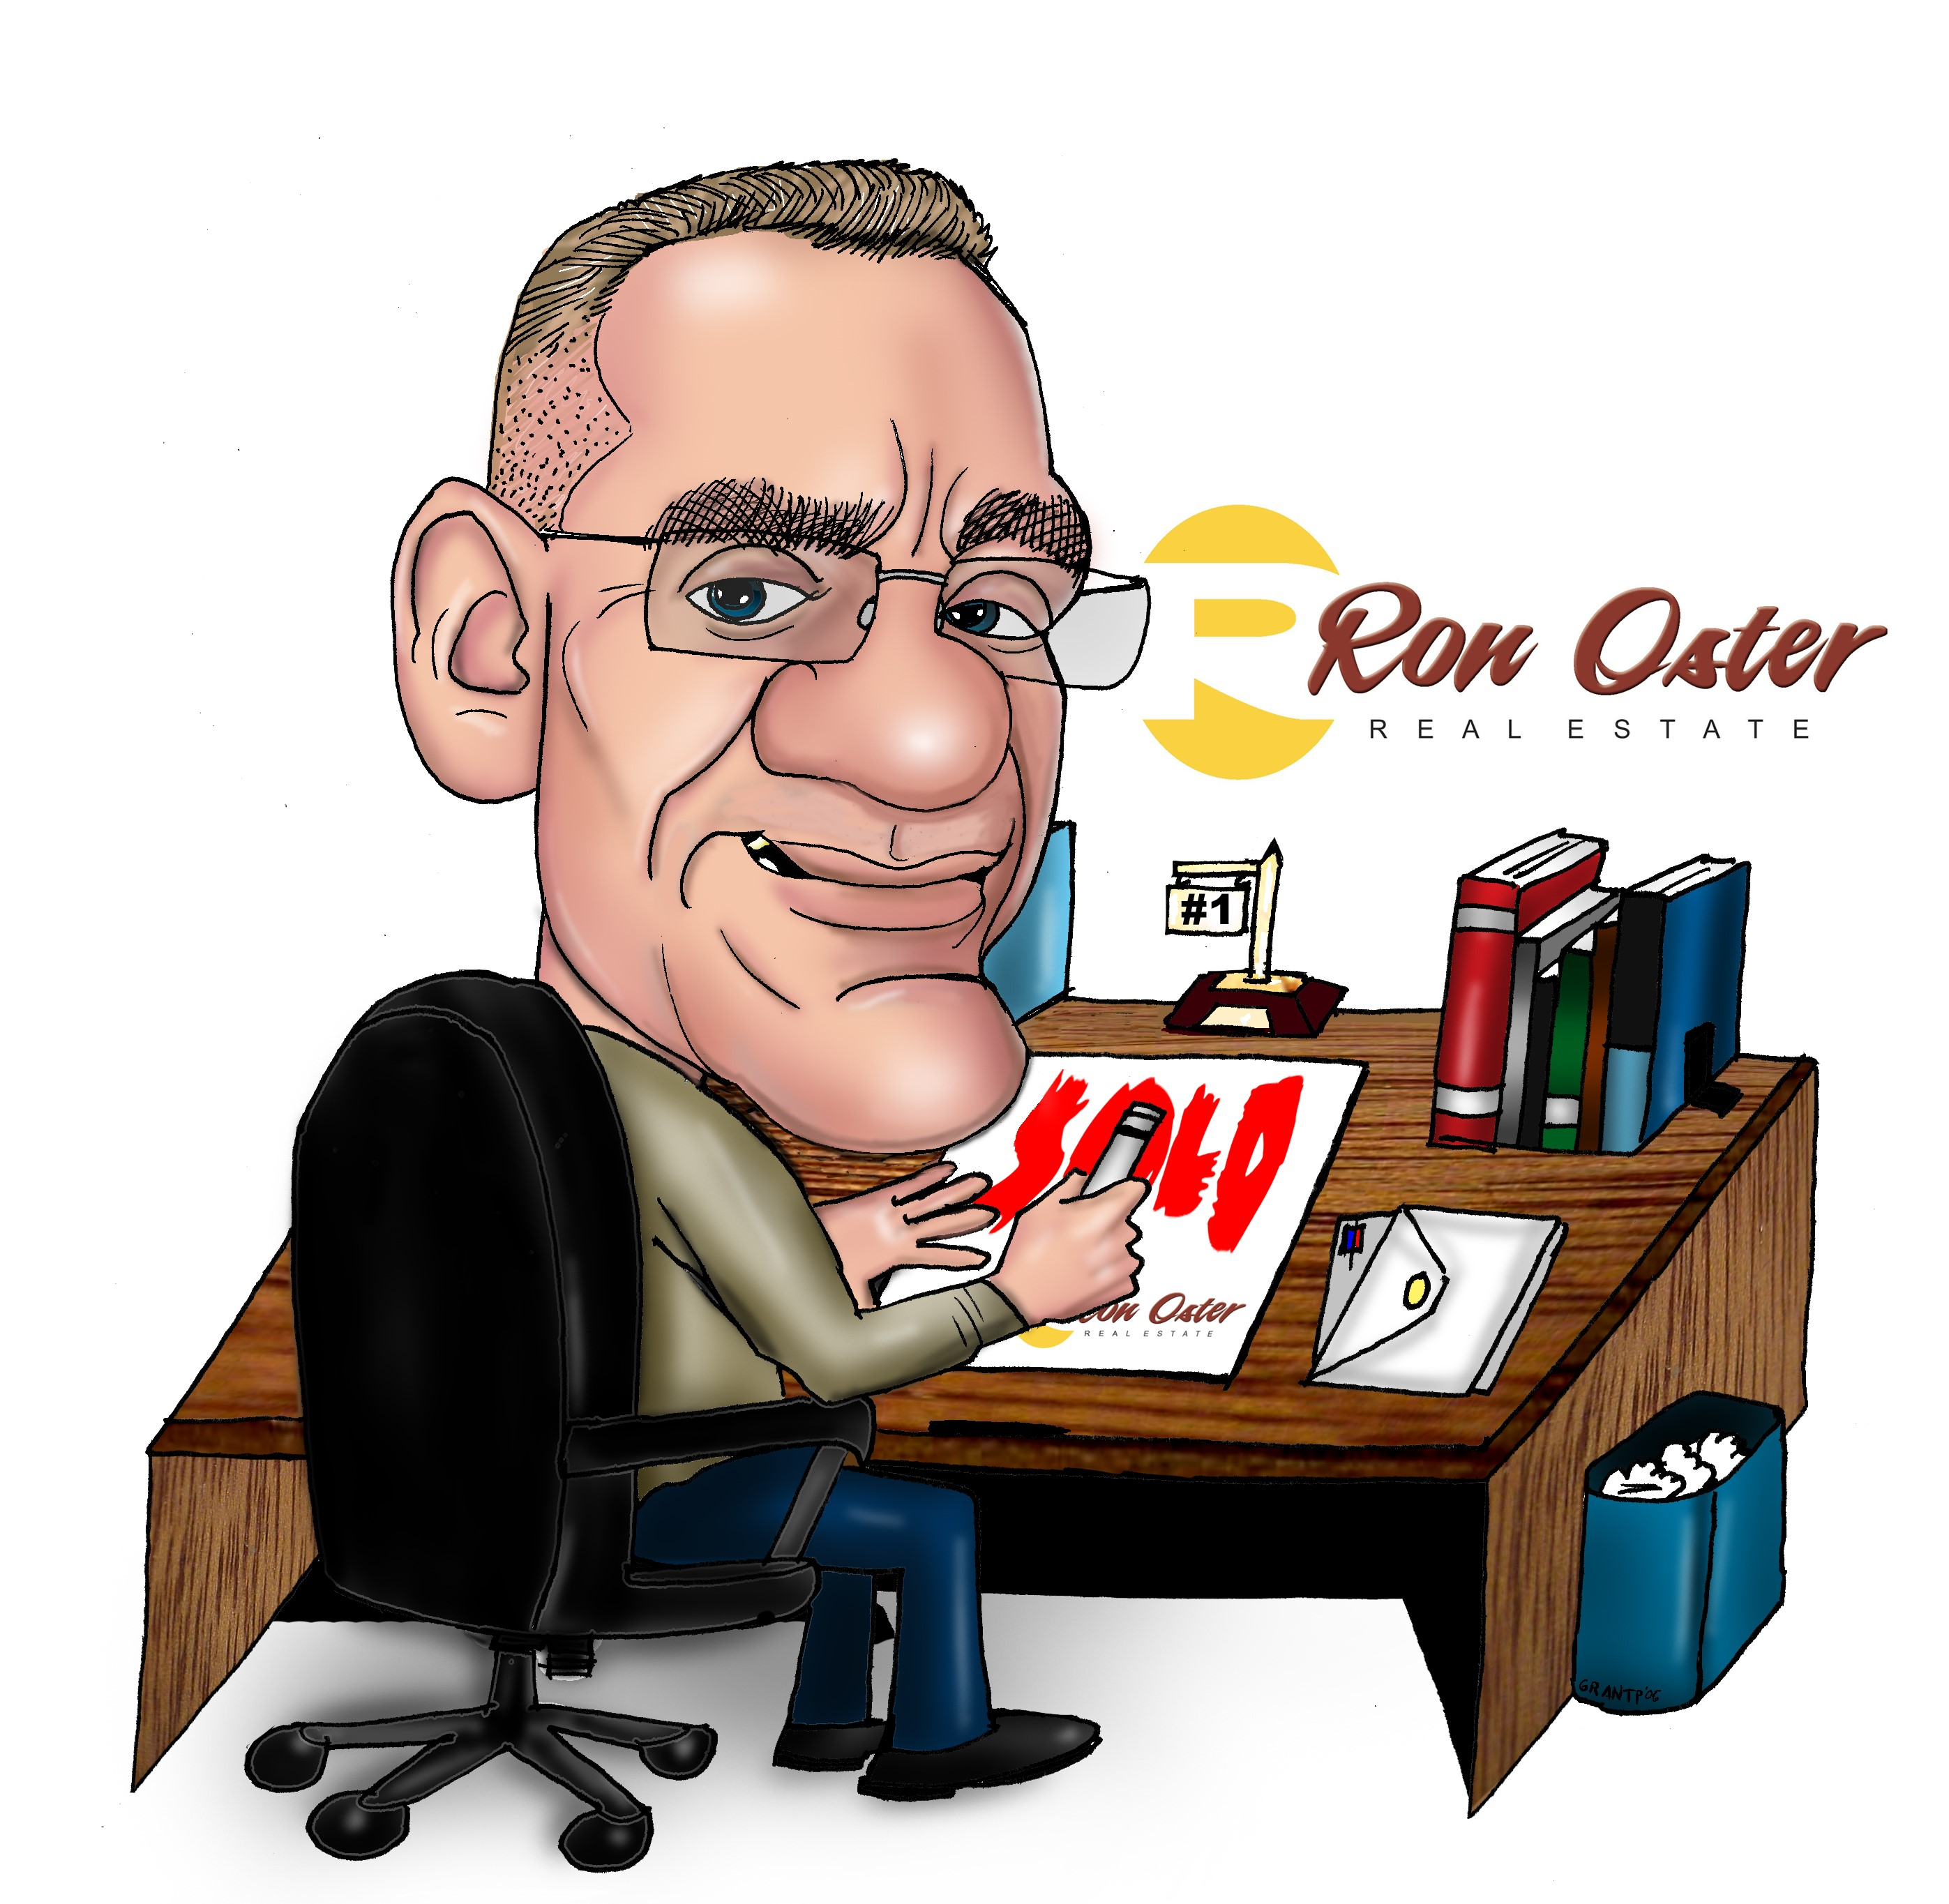 Ron Oster Caricature